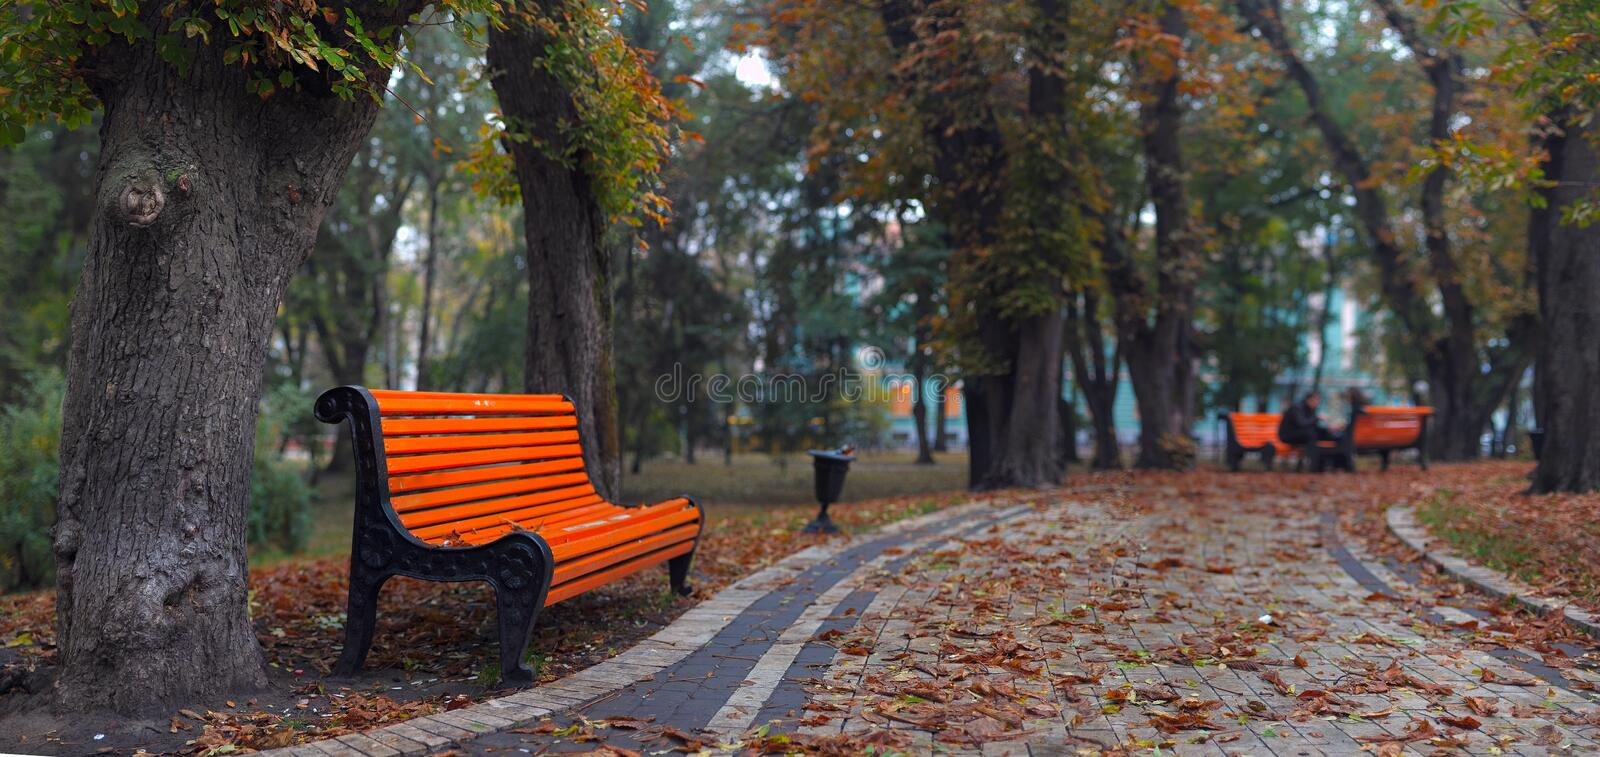 Download Benches in city park stock image. Image of cloudy, down - 11447123